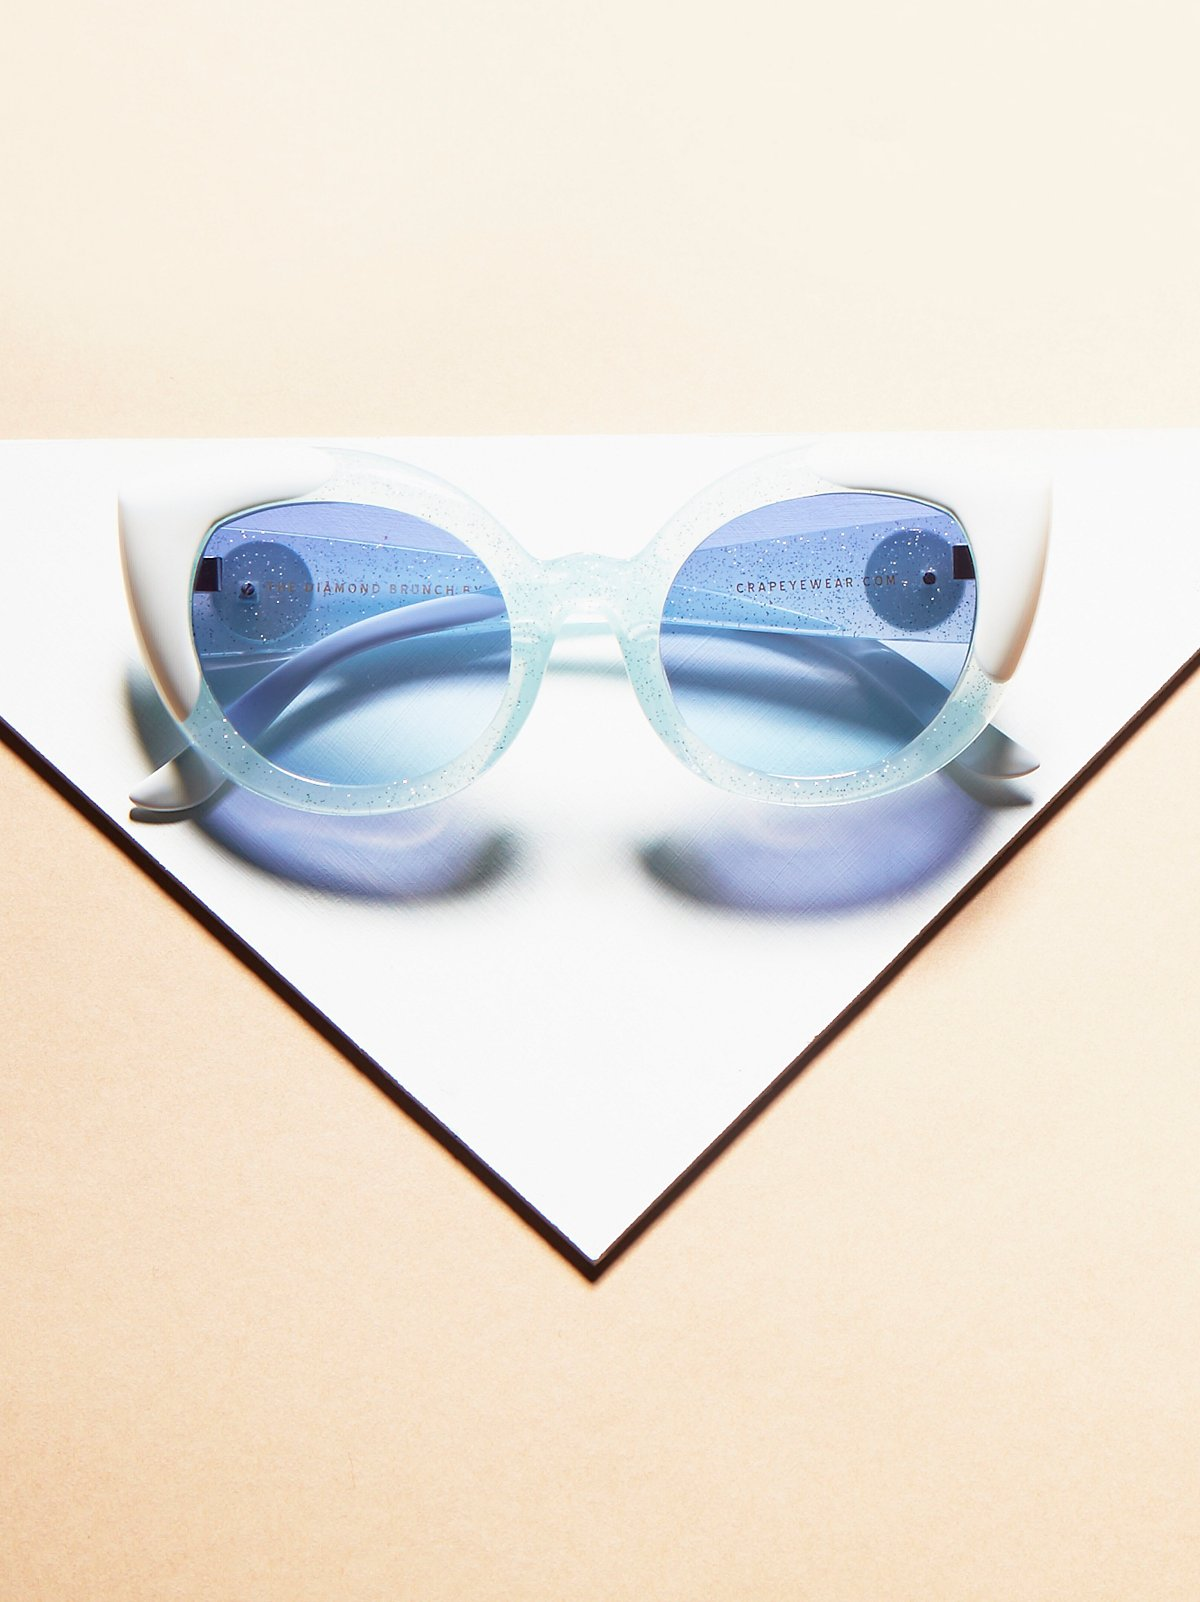 Diamond Brunch Sunglass